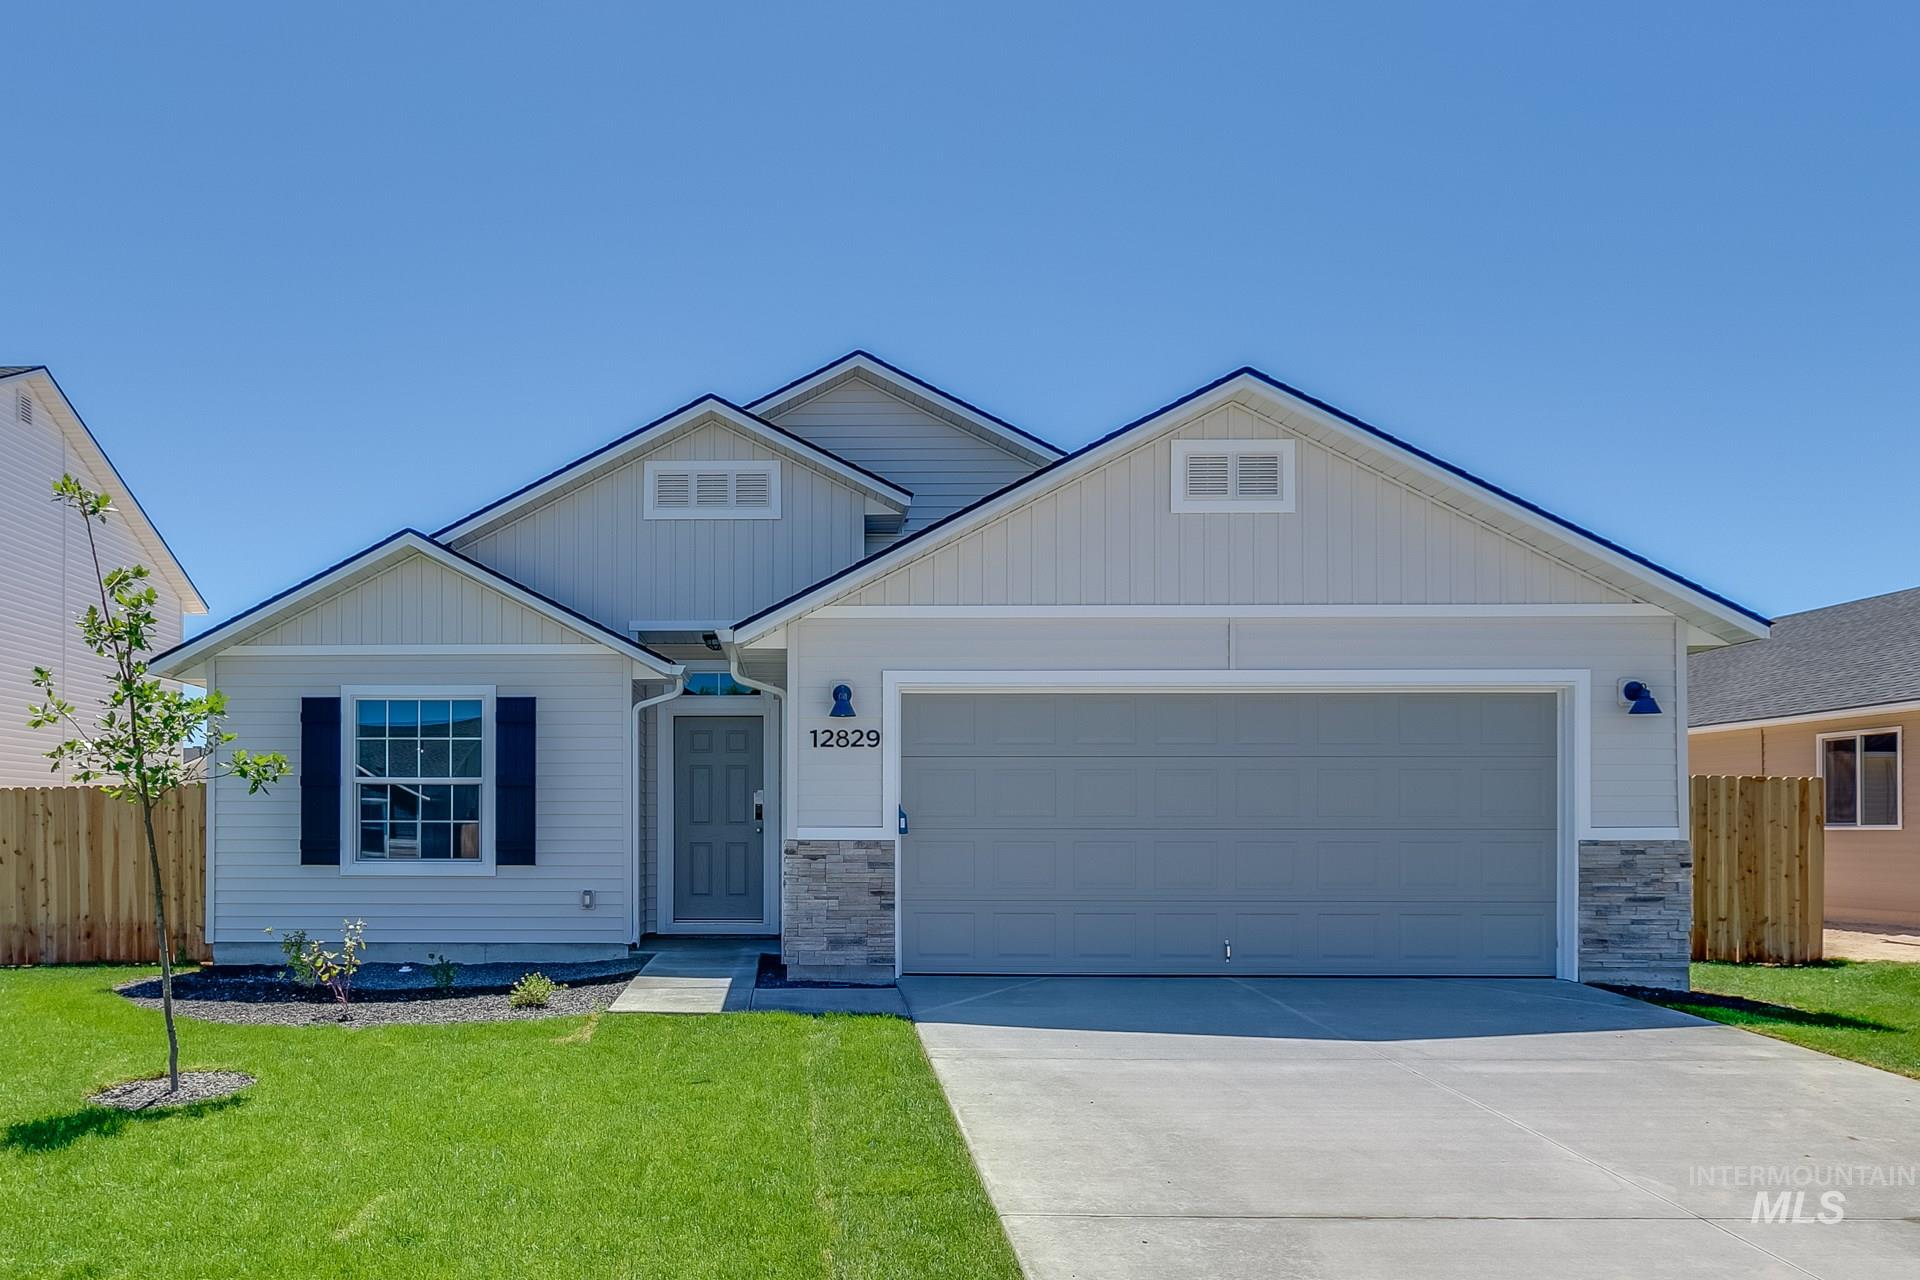 Photo for 11864 W Box Canyon St, Star, ID 83669 (MLS # 98776216)